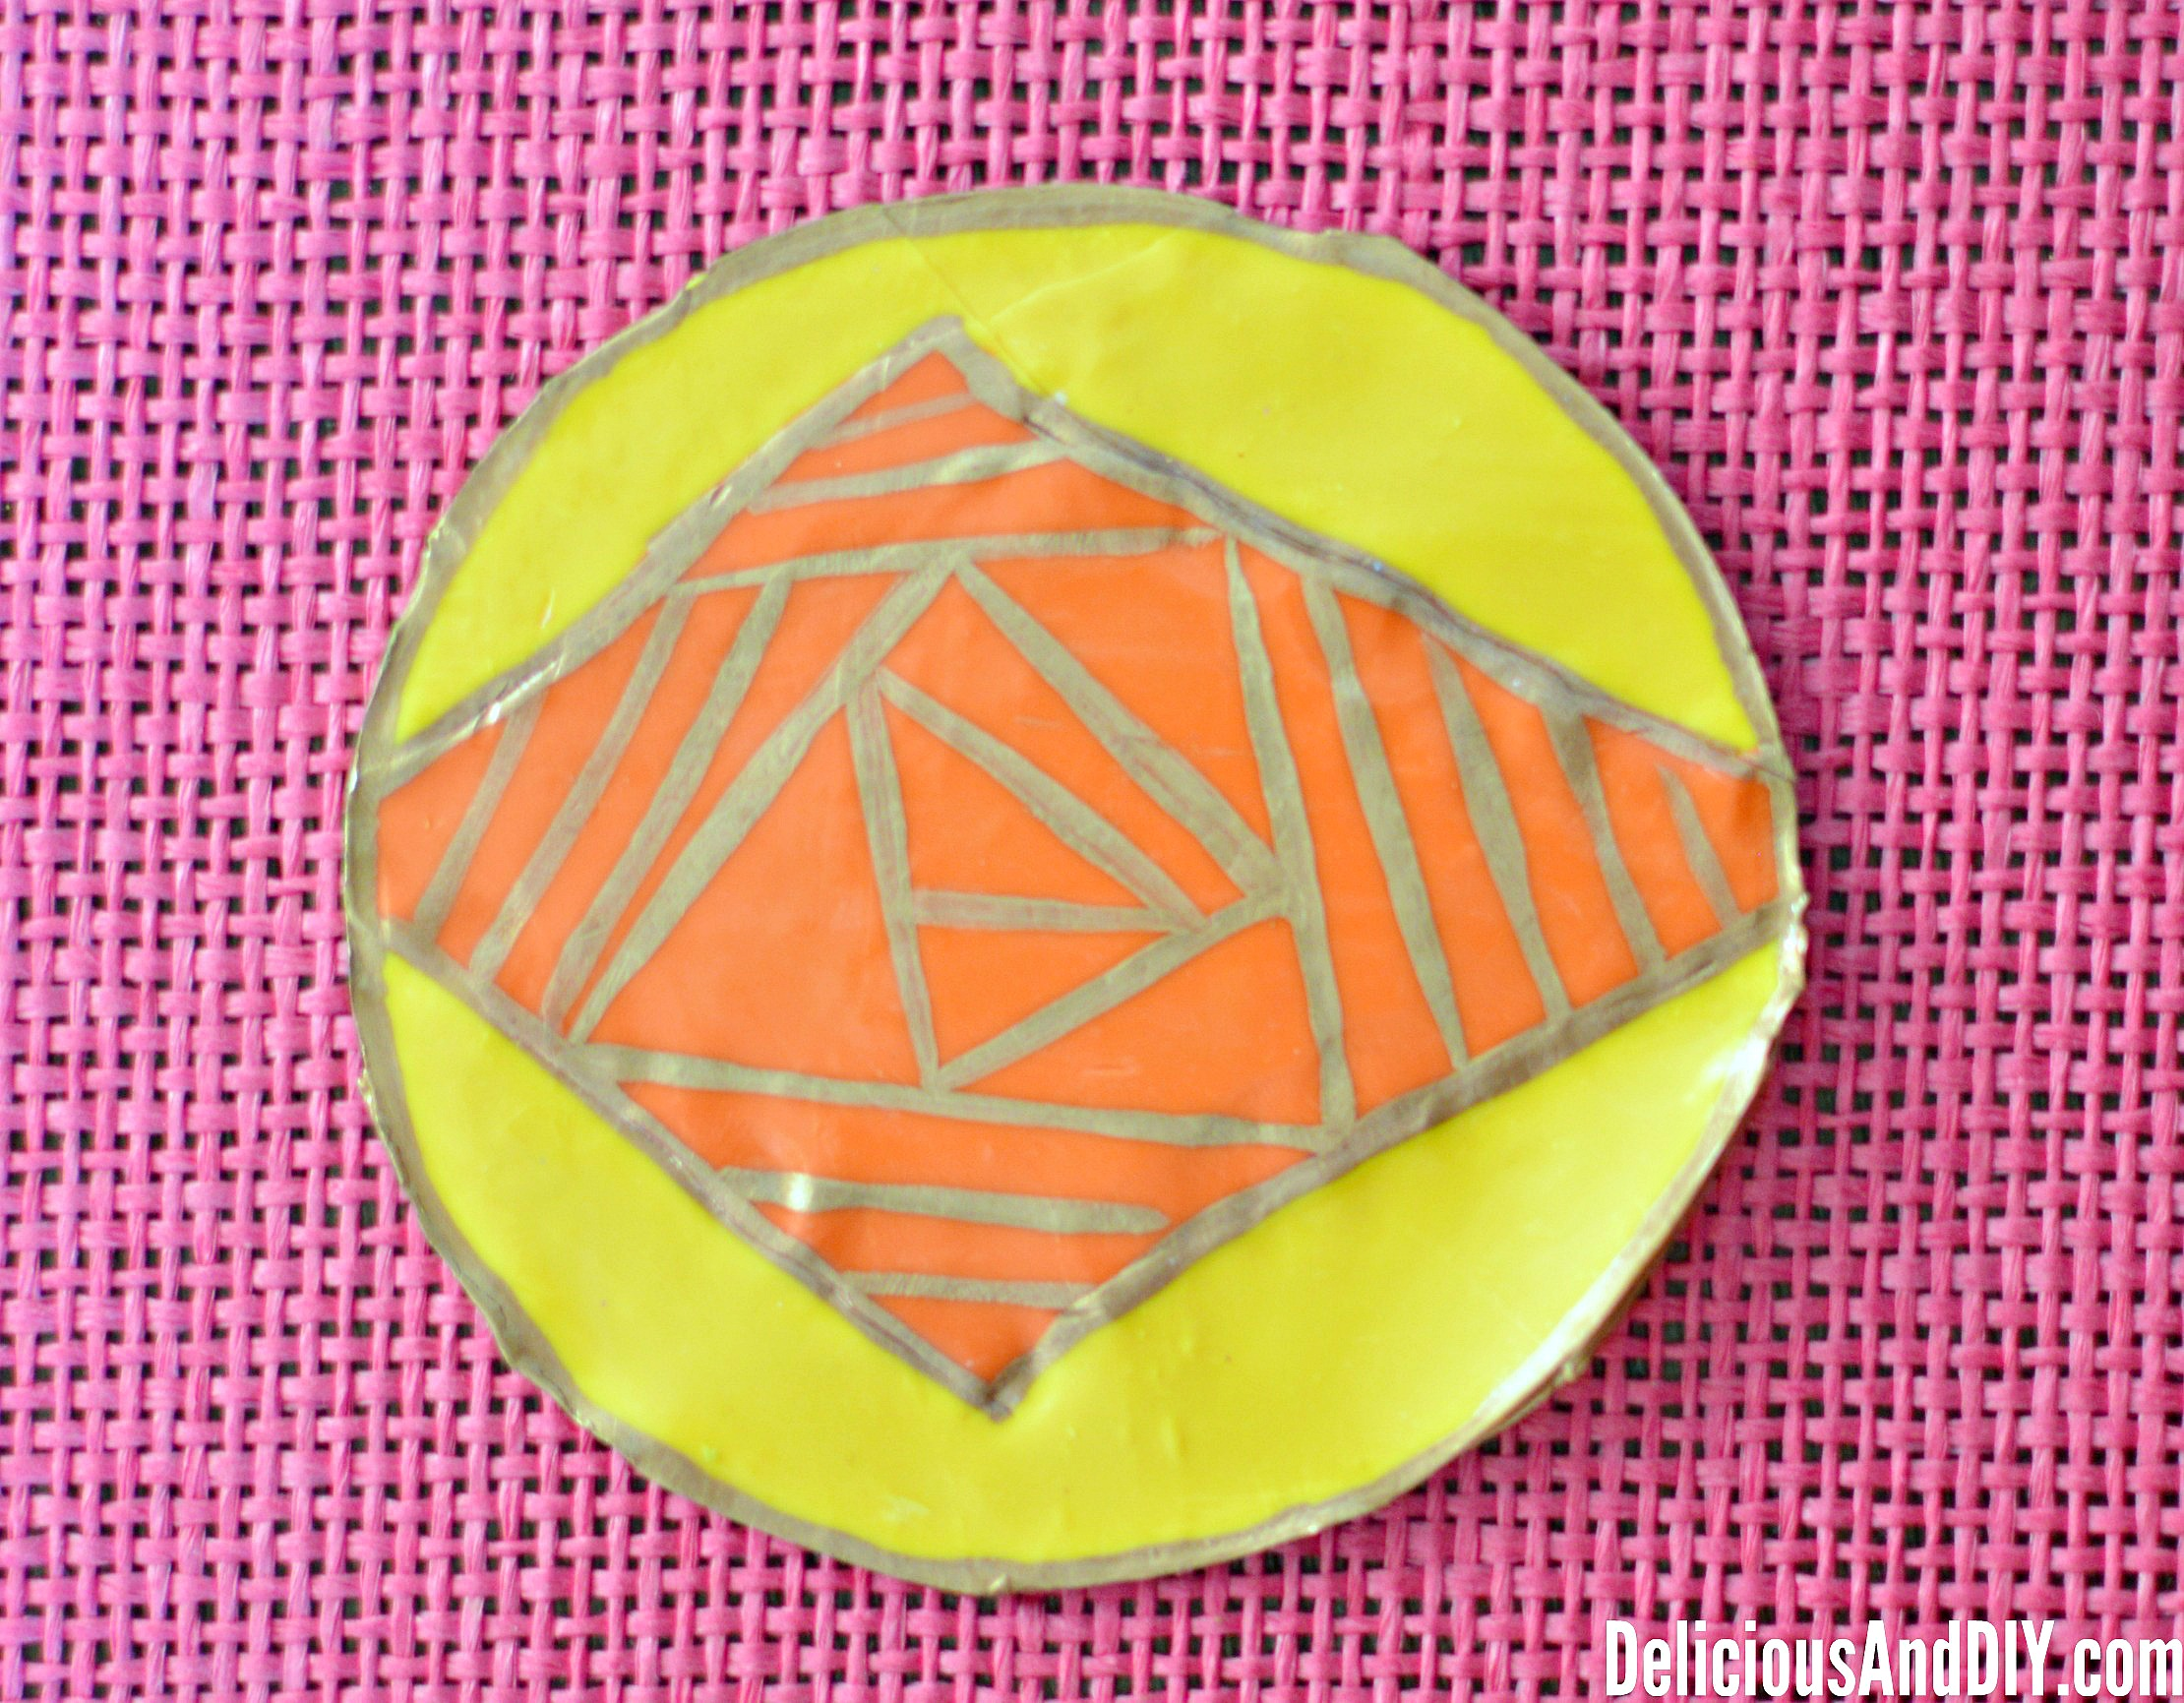 Geometric Coasters|Oven Bake Clay Projects| Hand Made Clay Coasters| DIY Crafts| Oven Clay Crafts| Easy Coaster Ideas|